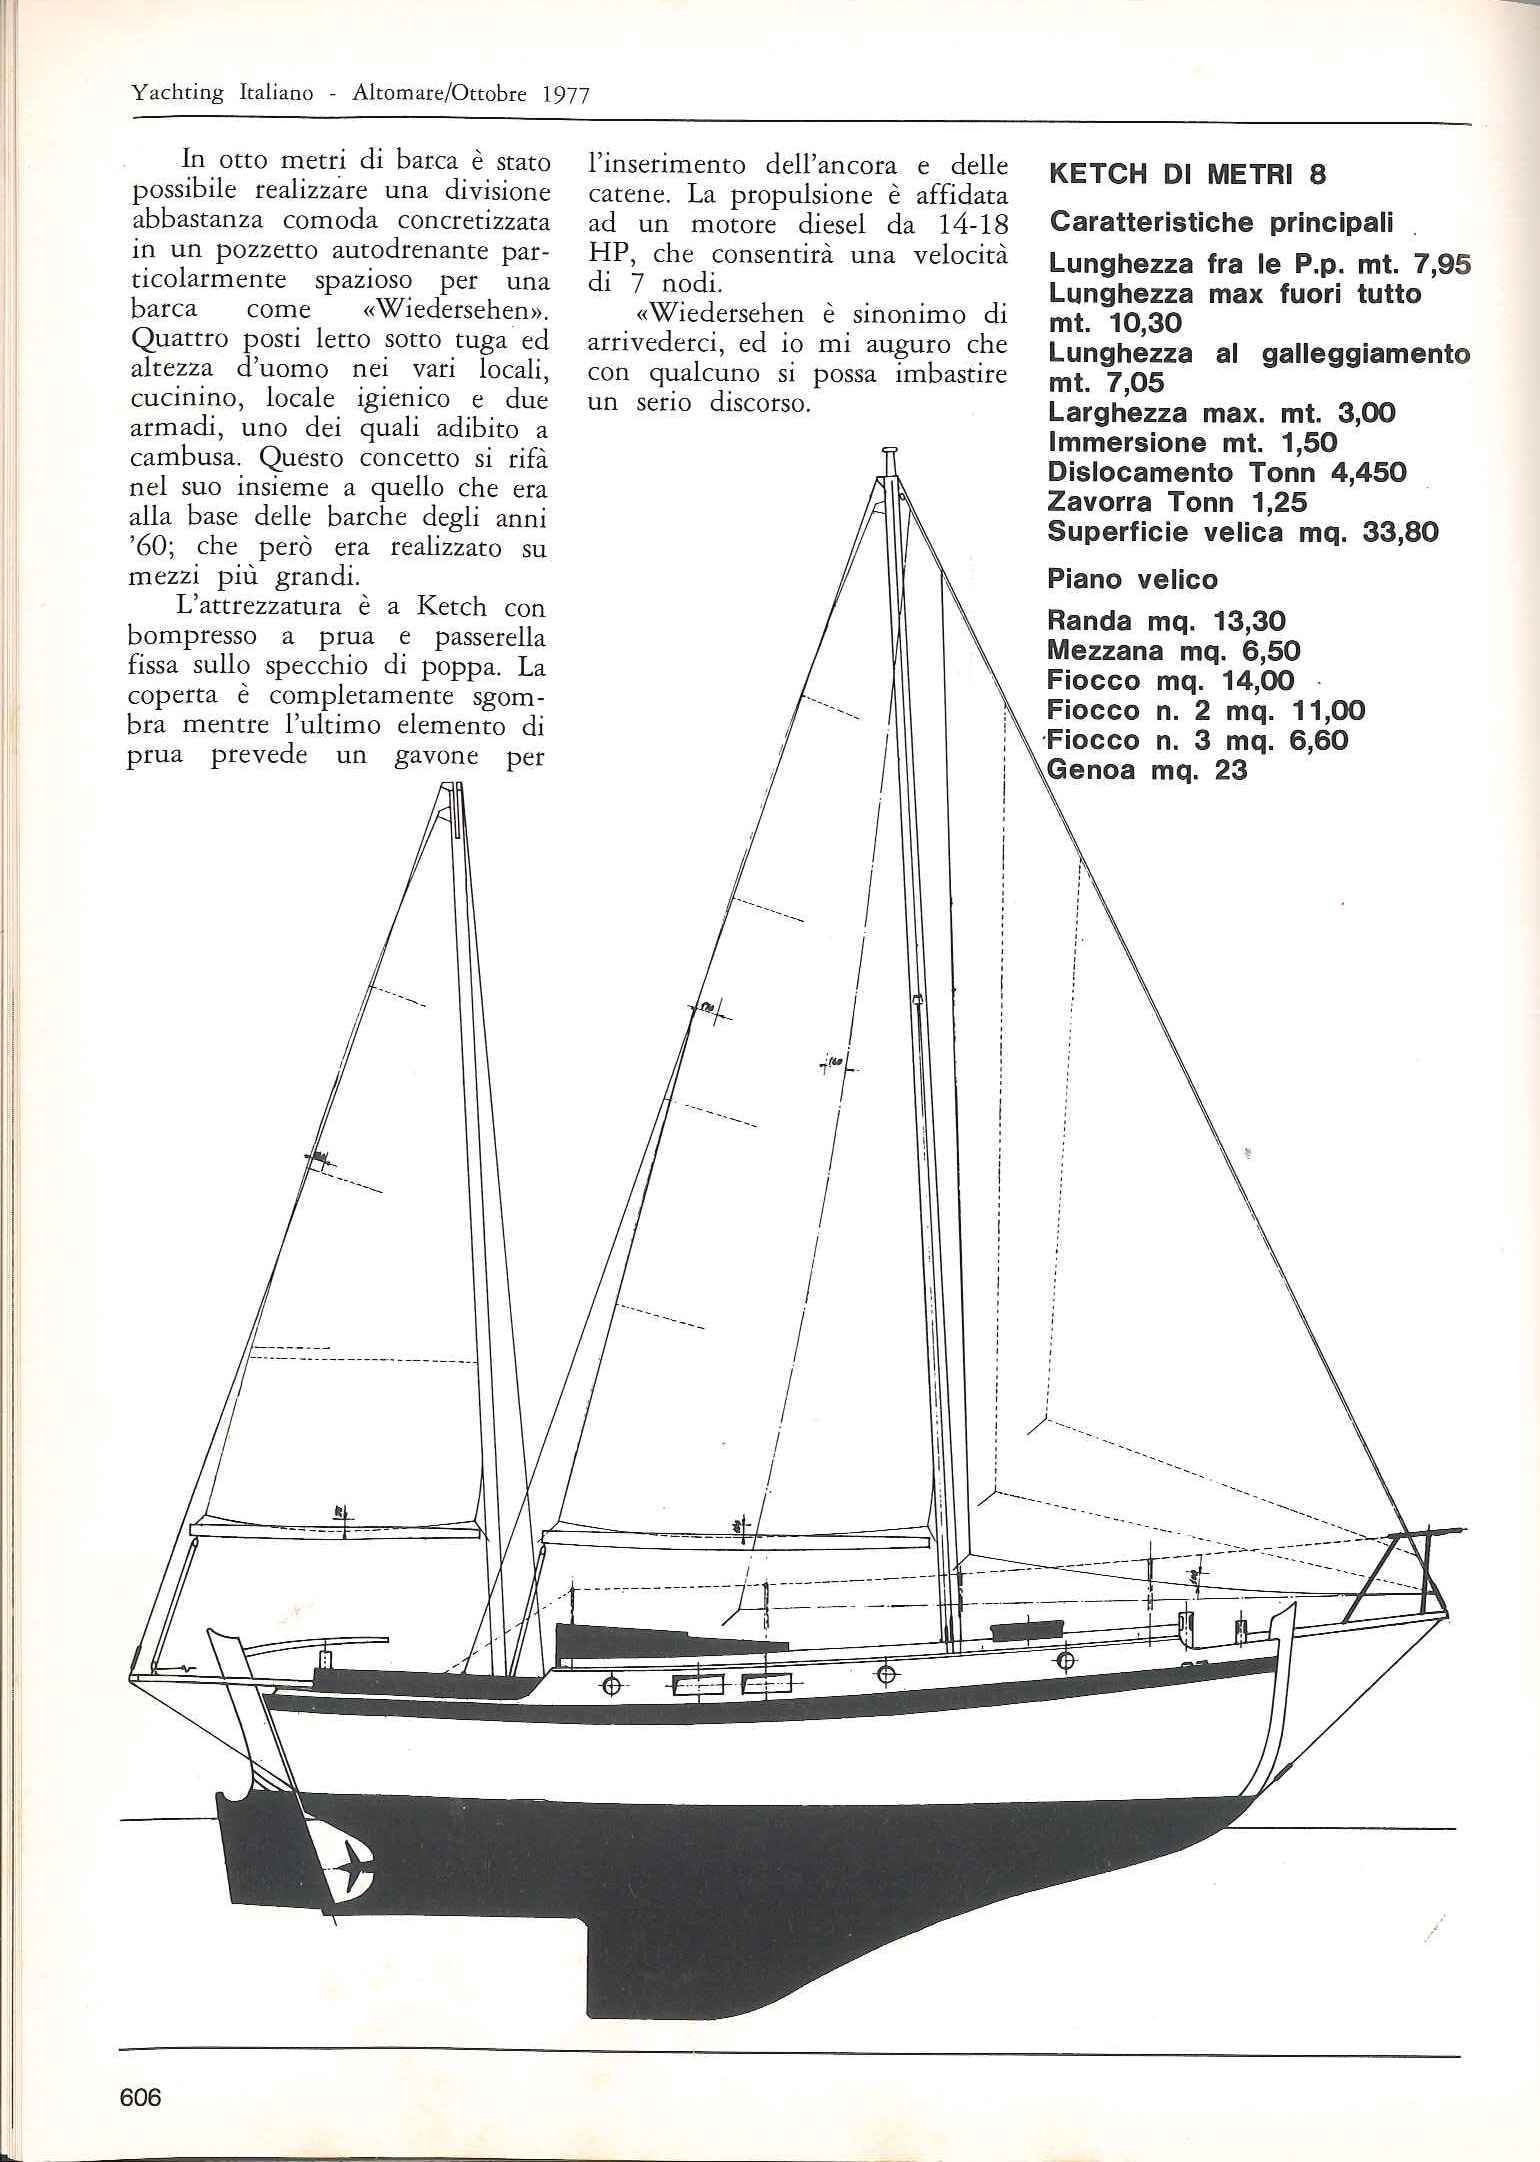 1977 10 PRESS WIEDERSEHEN (BORETTI) Yachting Italiano (2).jpg